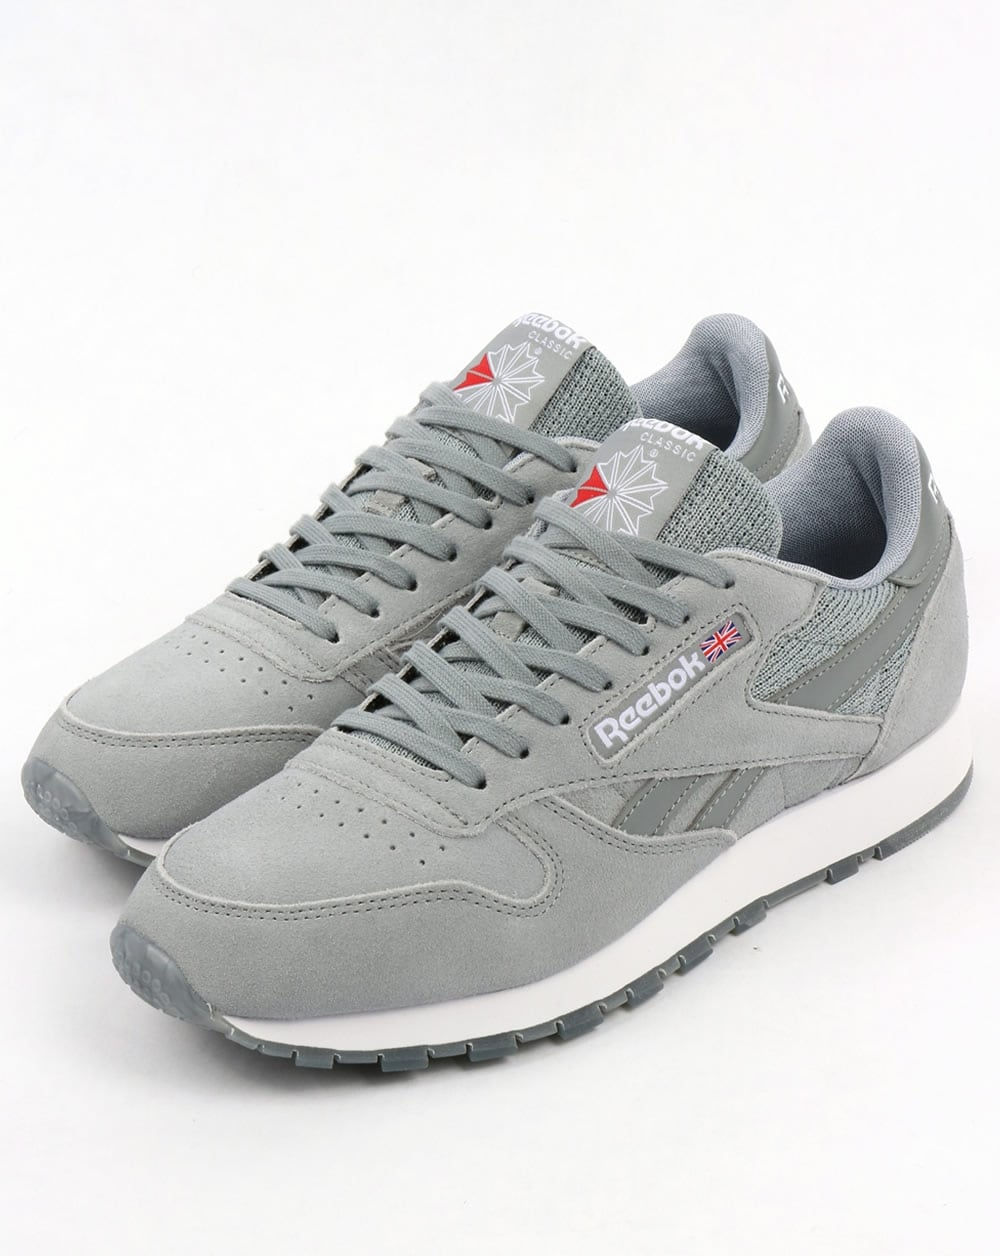 2cc3b5a58a6 Reebok Classic Leather NM Trainers Flint Grey White